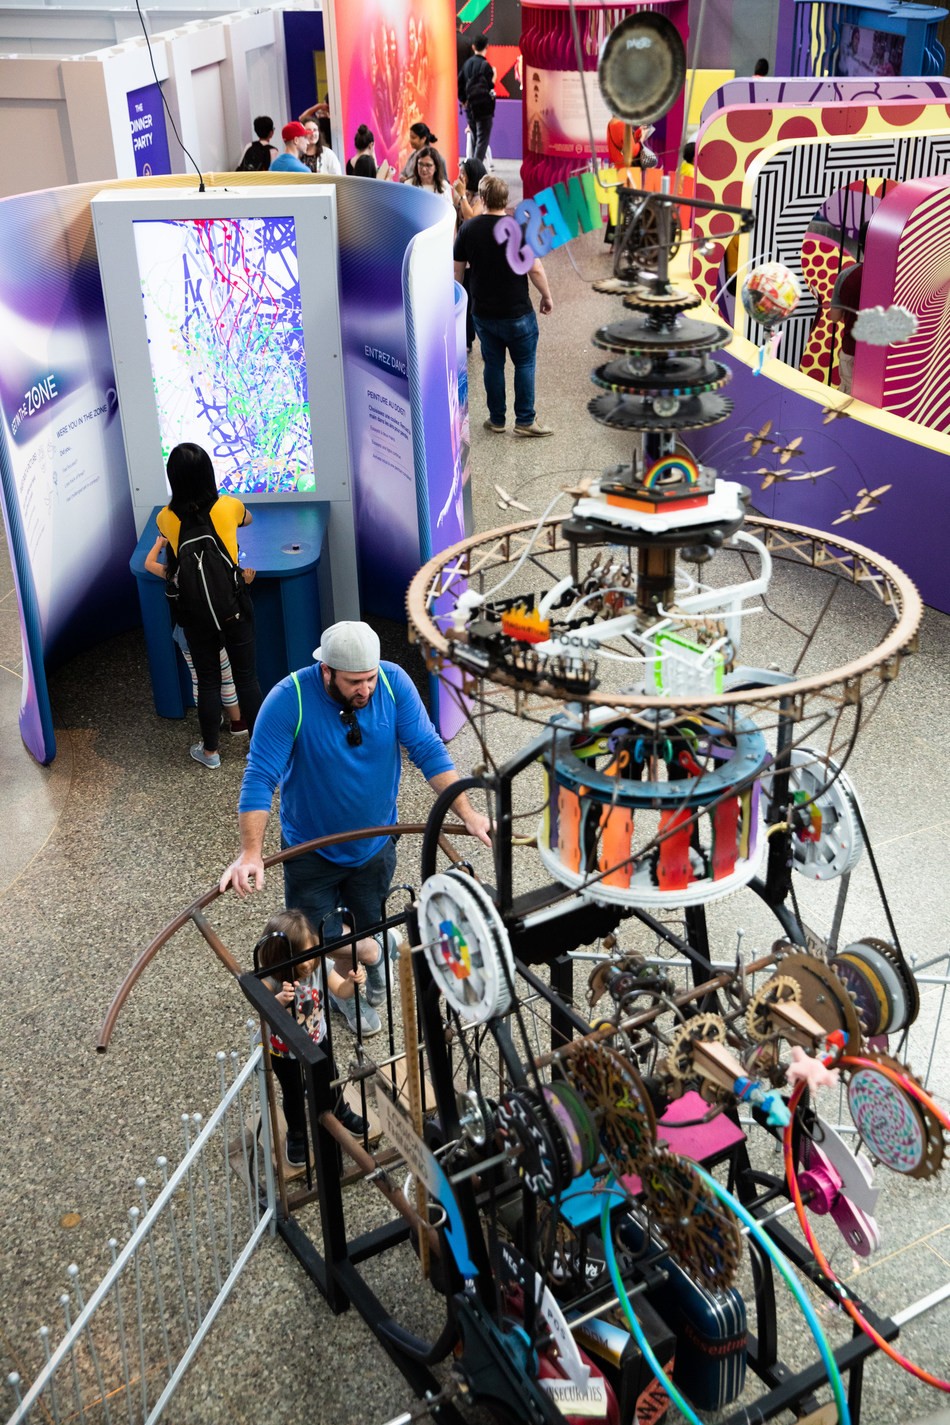 MindWorks, new psychology exhibition at the Ontario Science Centre, brings ideas like decision-making, memory and emotions to life through playful, interactive exhibits. MindWorks runs to April 26, 2020. (CNW Group/Ontario Science Centre)